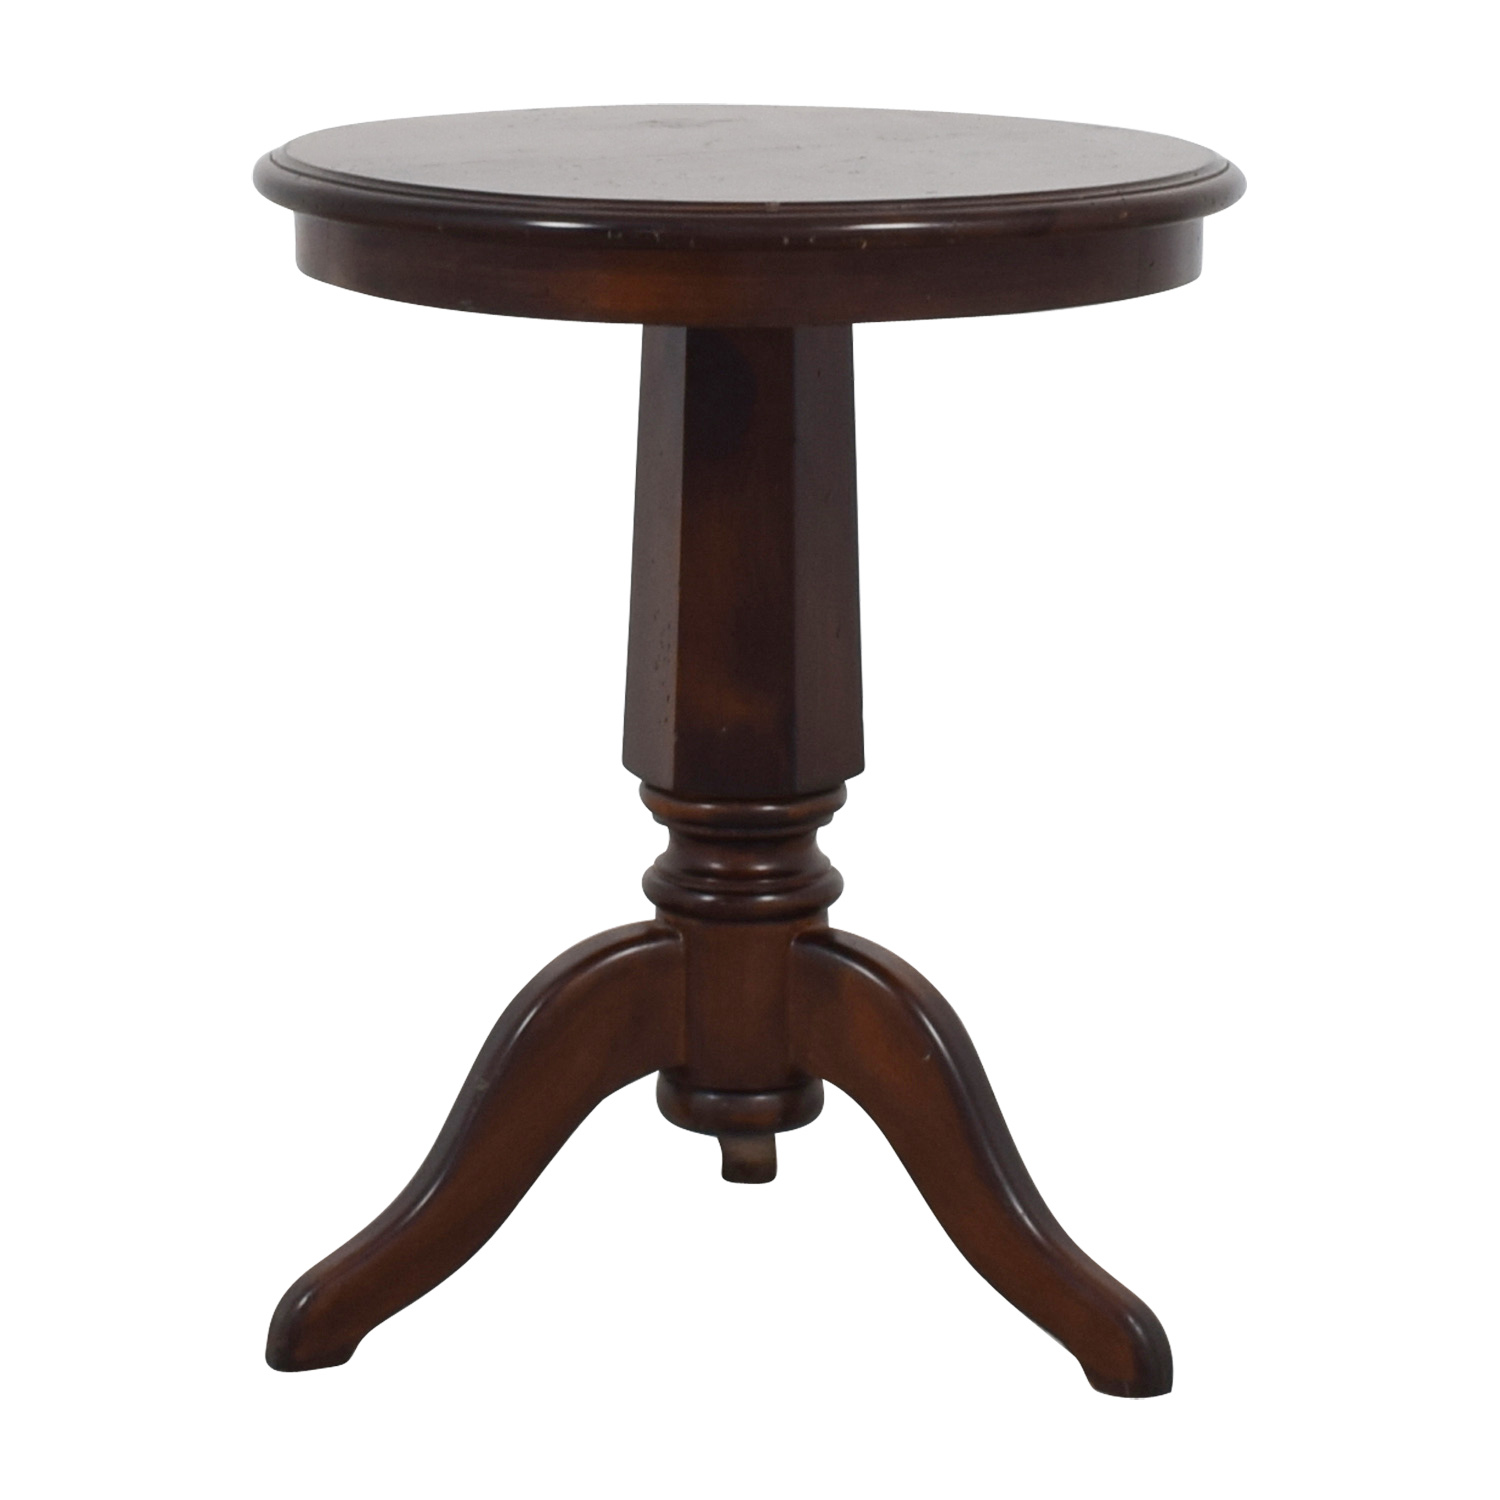 Furniture Masters Round Wooden End Table second hand